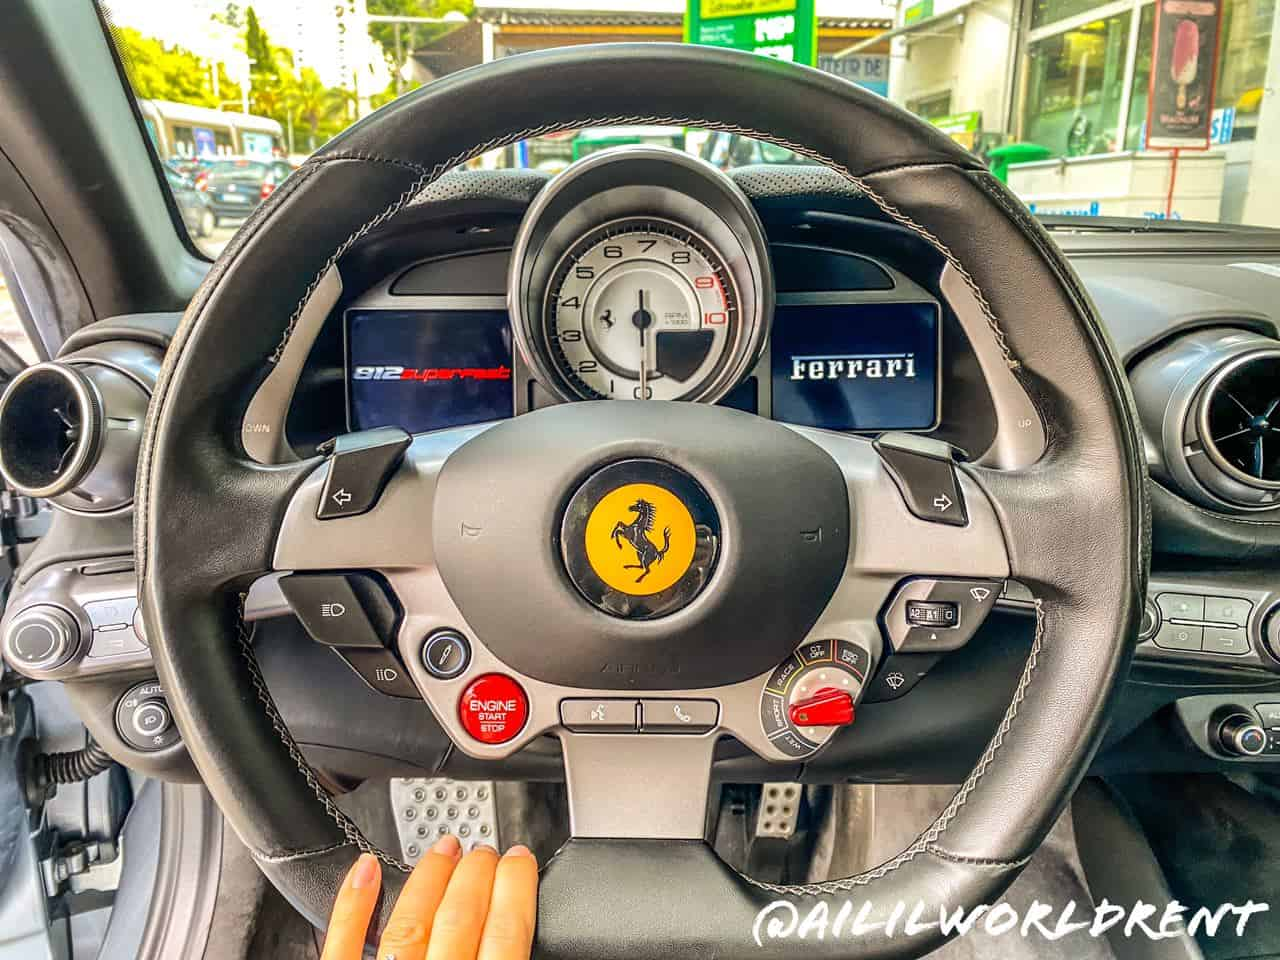 steering wheel ferrari 812 superfast,rent ferrari 812 in rome, rent ferrari 812 in sorrento, rent ferrari 812 in milano, rent ferrari 812 in monaco, rent ferrari 812 in barcelona, rent ferrari 812 in ibiza, rent ferrari 812 in lugano, rent ferrari 812 in nice, rent ferrari 812 in cannes, rent ferrari 812 in sainttropez